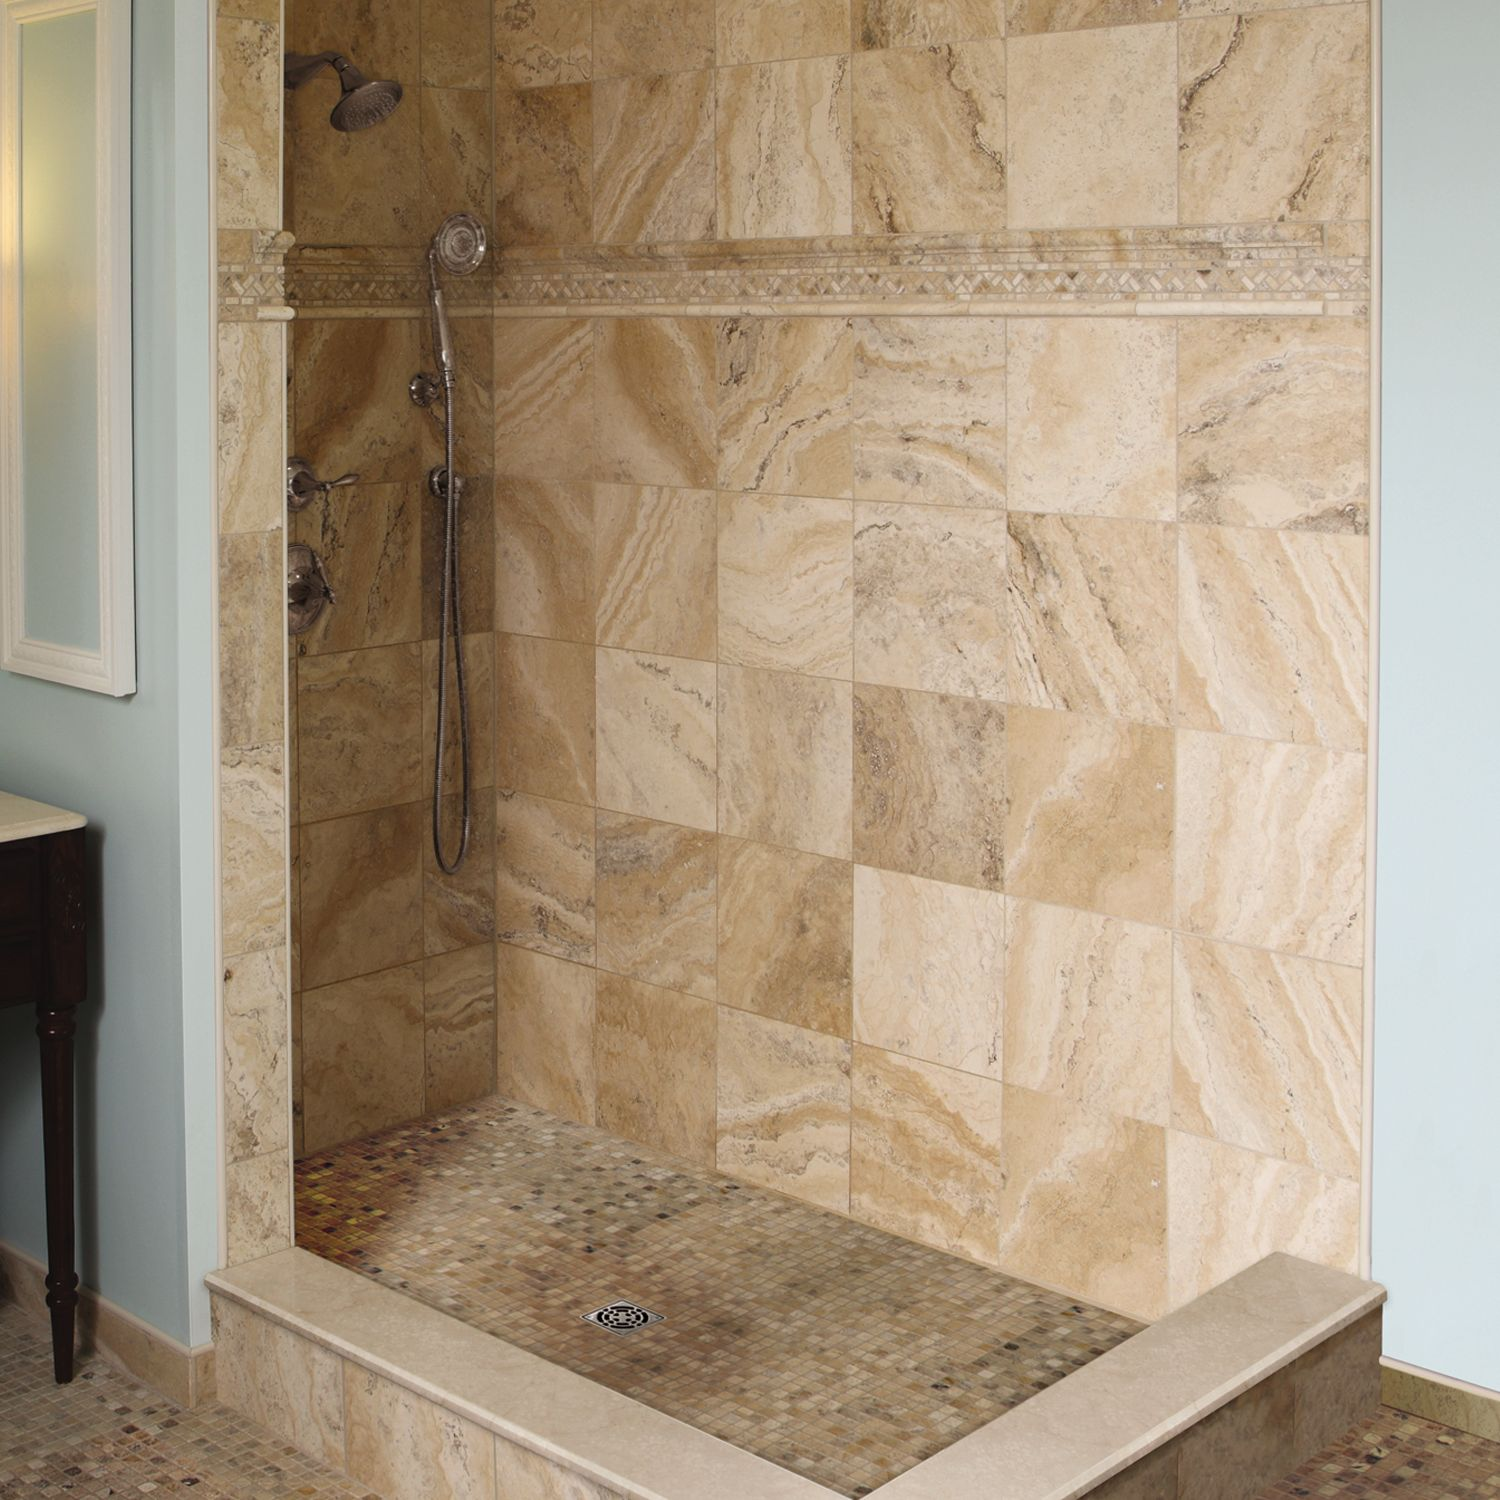 Schlutercom Homepage - Daltile greenville